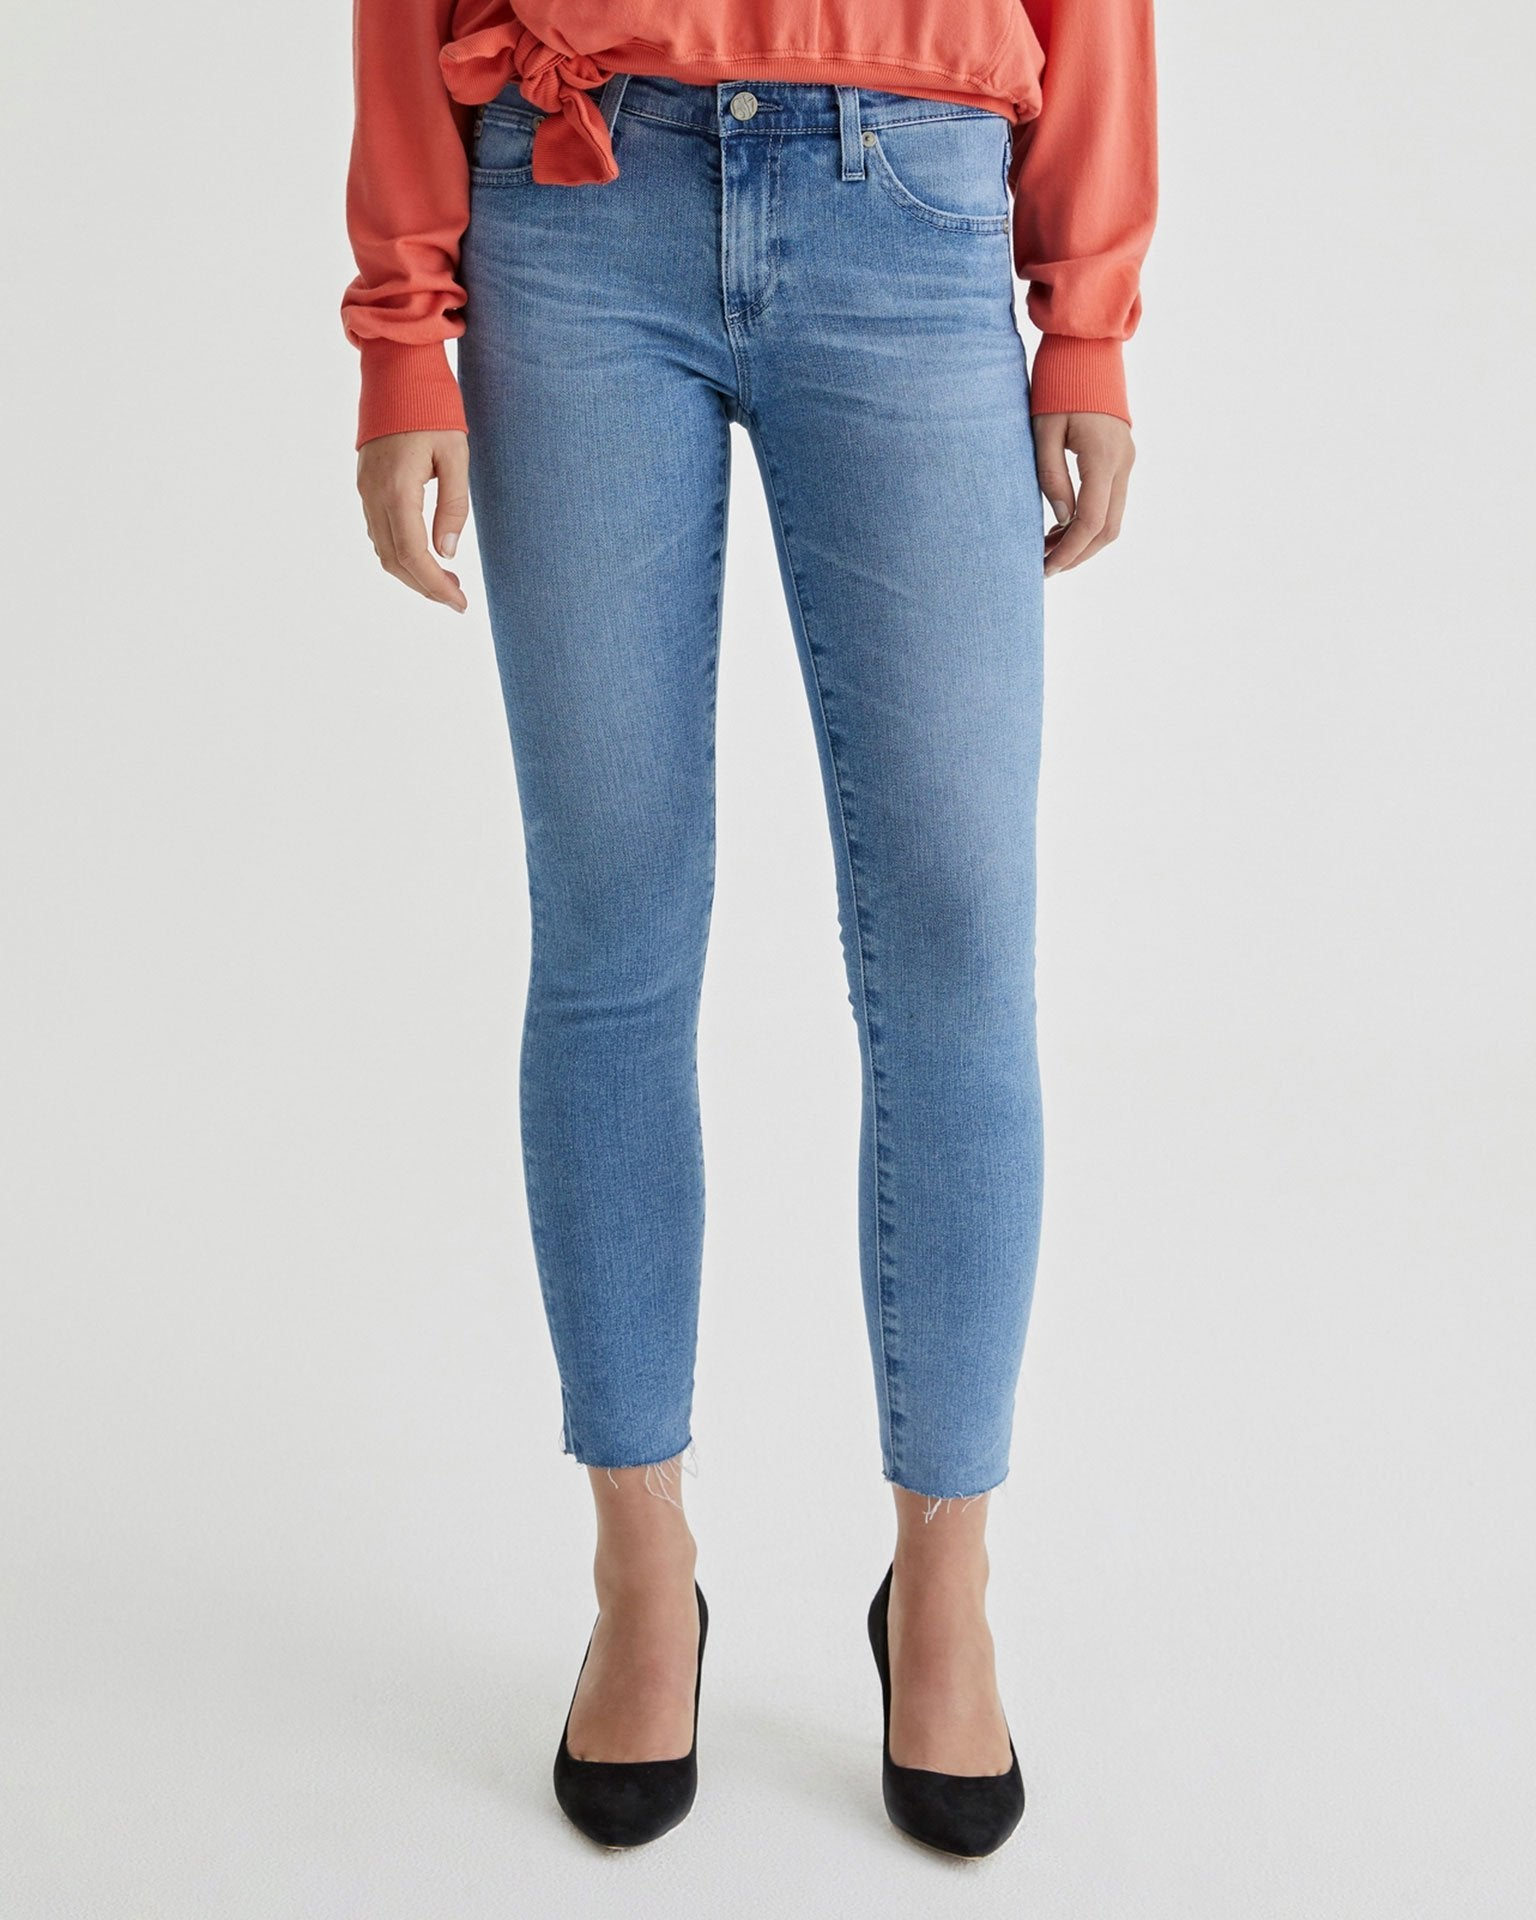 Adriano Goldschmied Denim 16Ys Serenity / 24 The Legging Ankle Split Hem in 16Ys Serenity